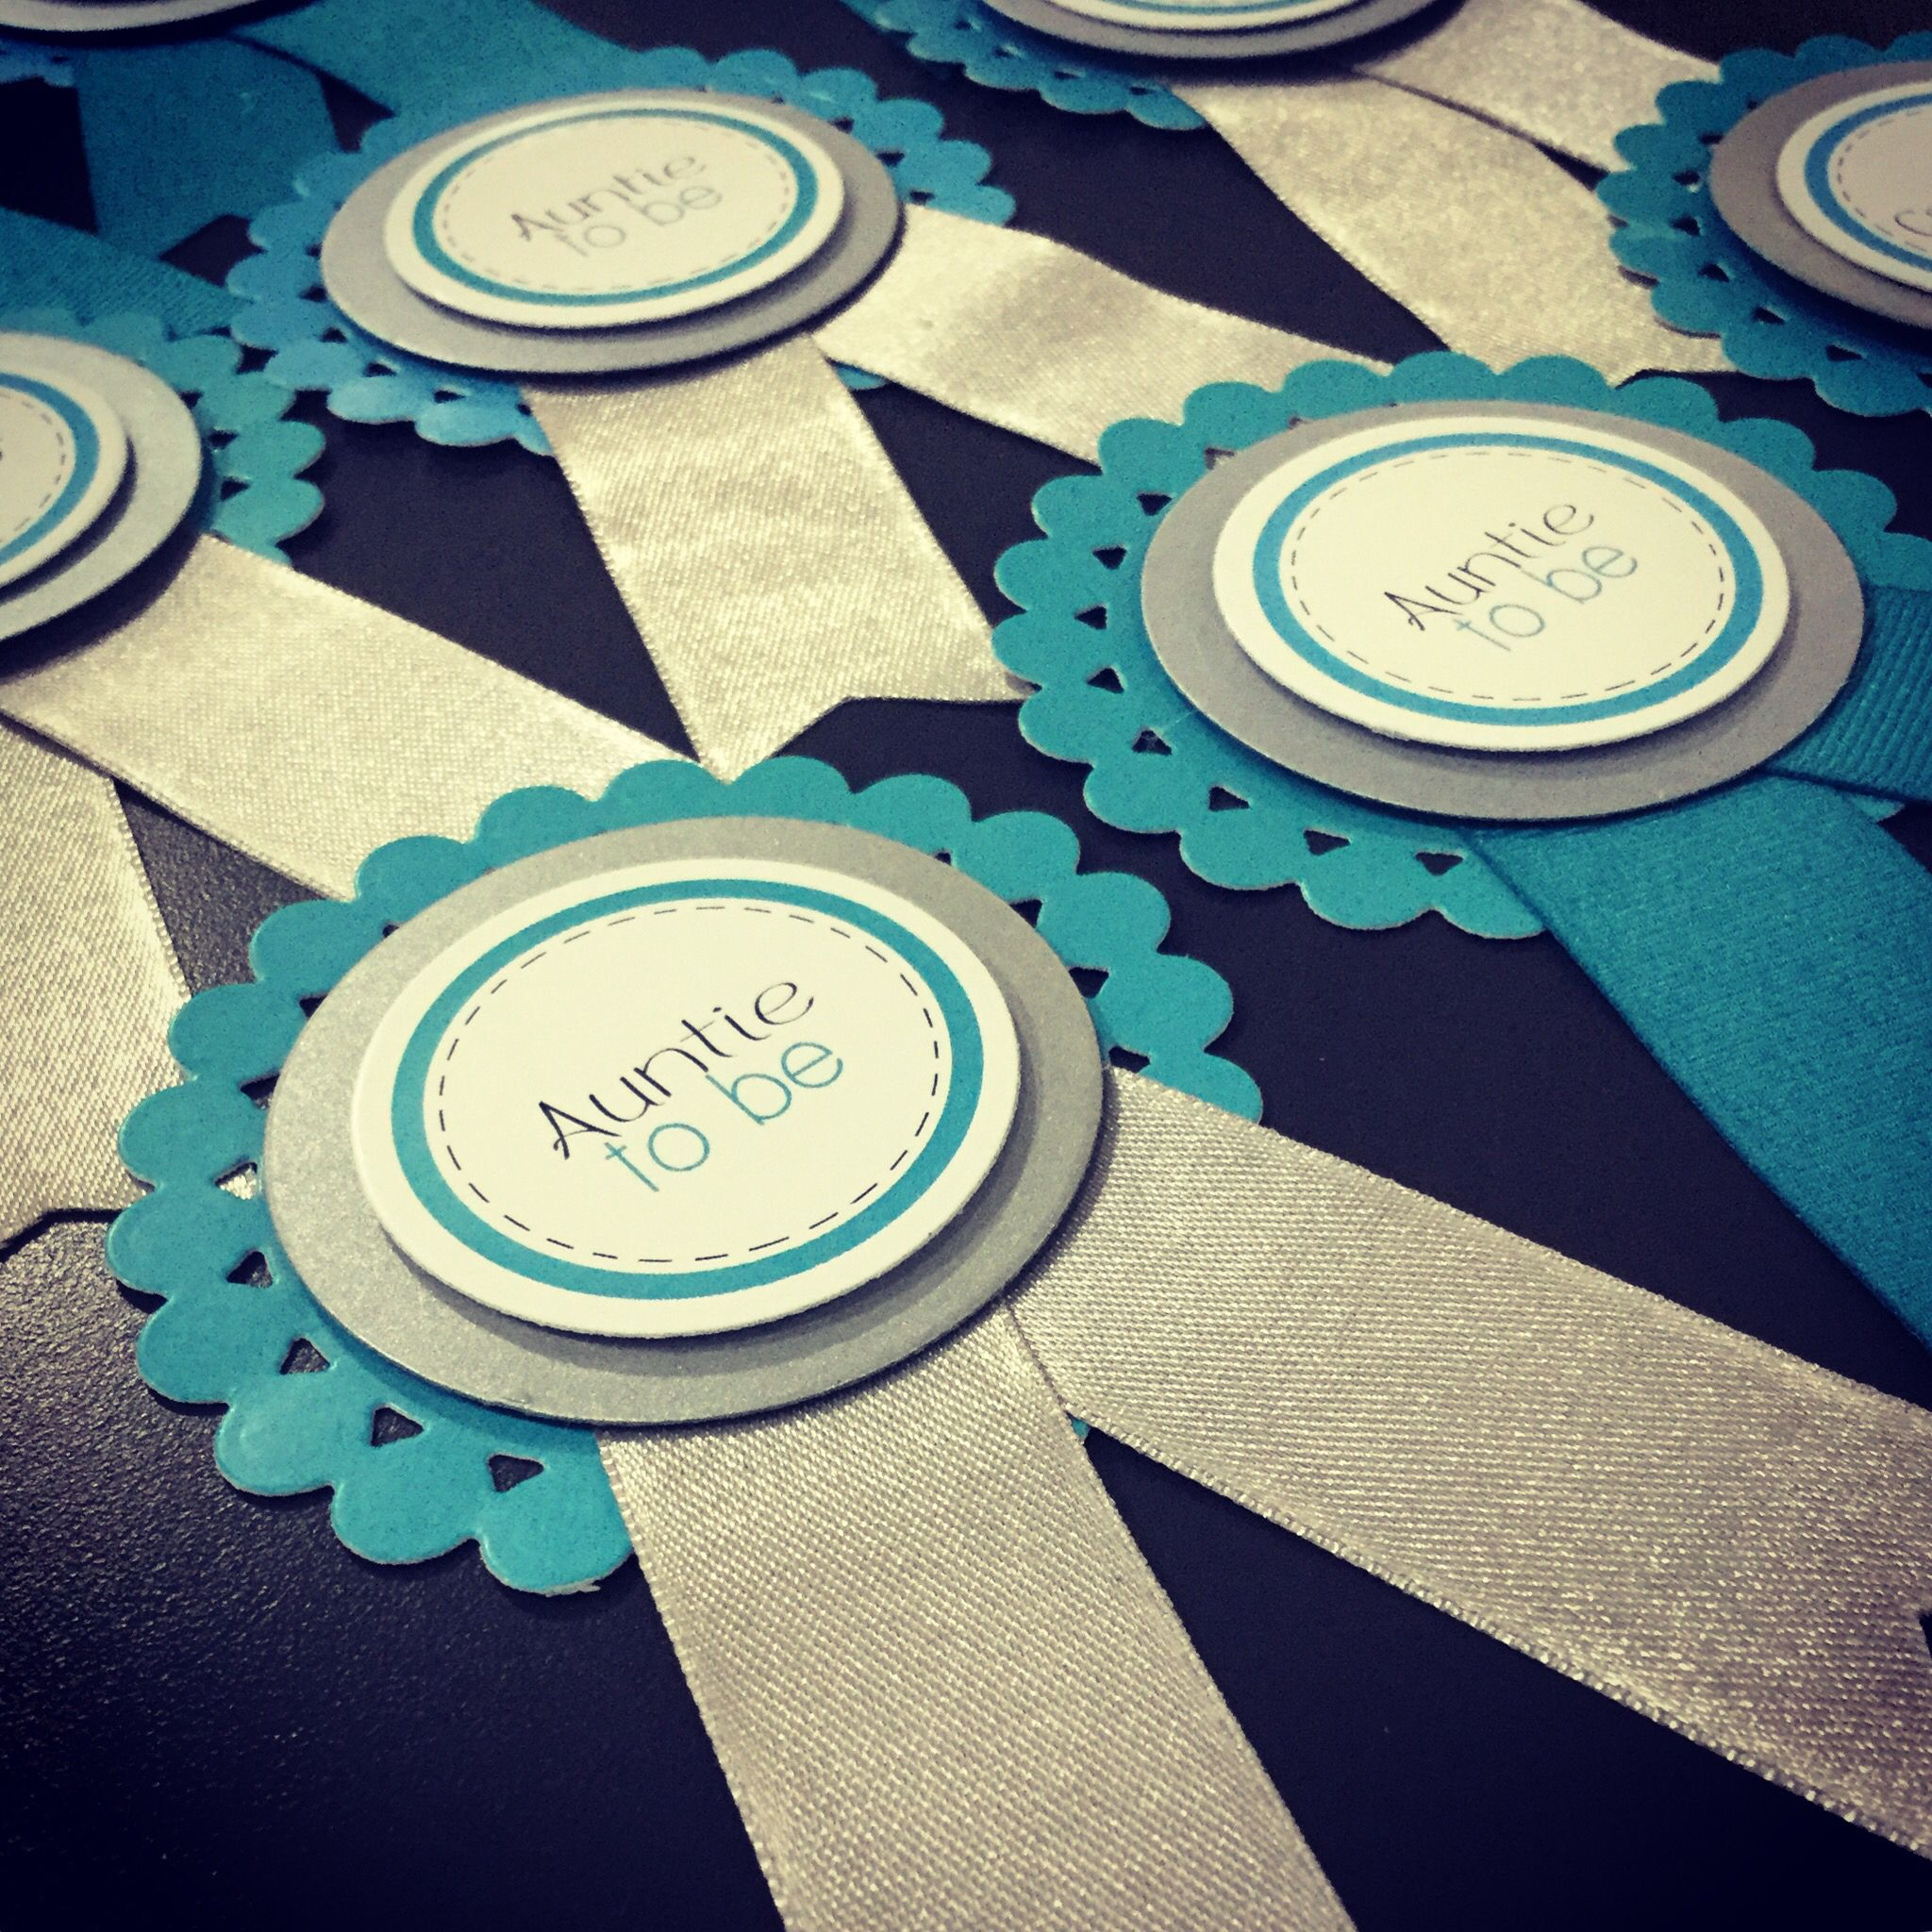 Botones o Broches #babyshower